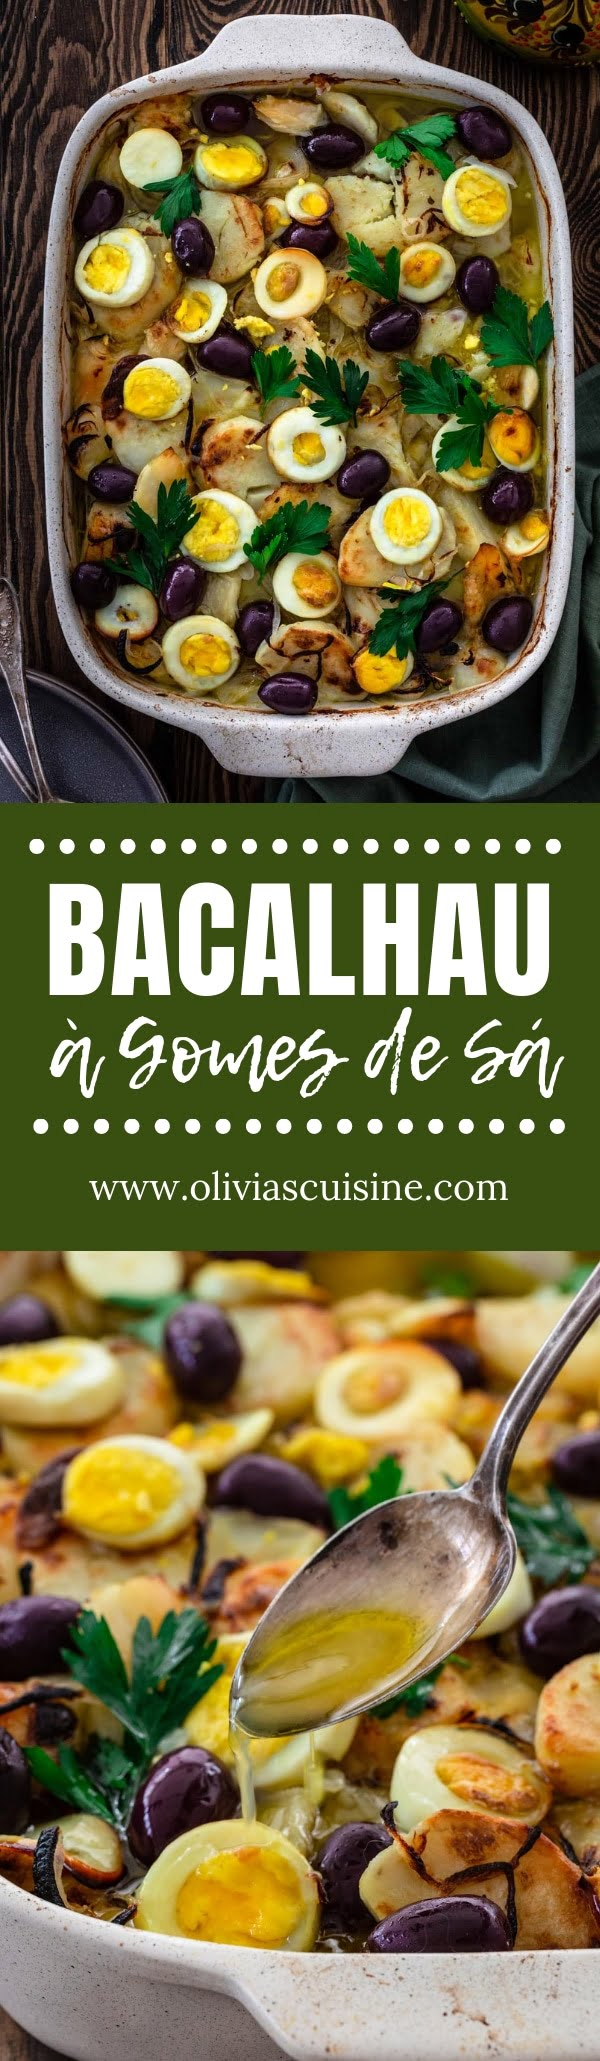 Bacalhau à Gomes de Sá | www.oliviascuisine.com | Bacalhau – a popular Portuguese dish made with salt cod, potatoes, onions, hard boiled eggs, olives and olive oil – is traditionally served on Good Friday, but easy enough to be enjoyed all year round! (Recipe and food photography by @oliviascuisine.) #codfish #bacalhau #bacalao #portuguese #brazilian